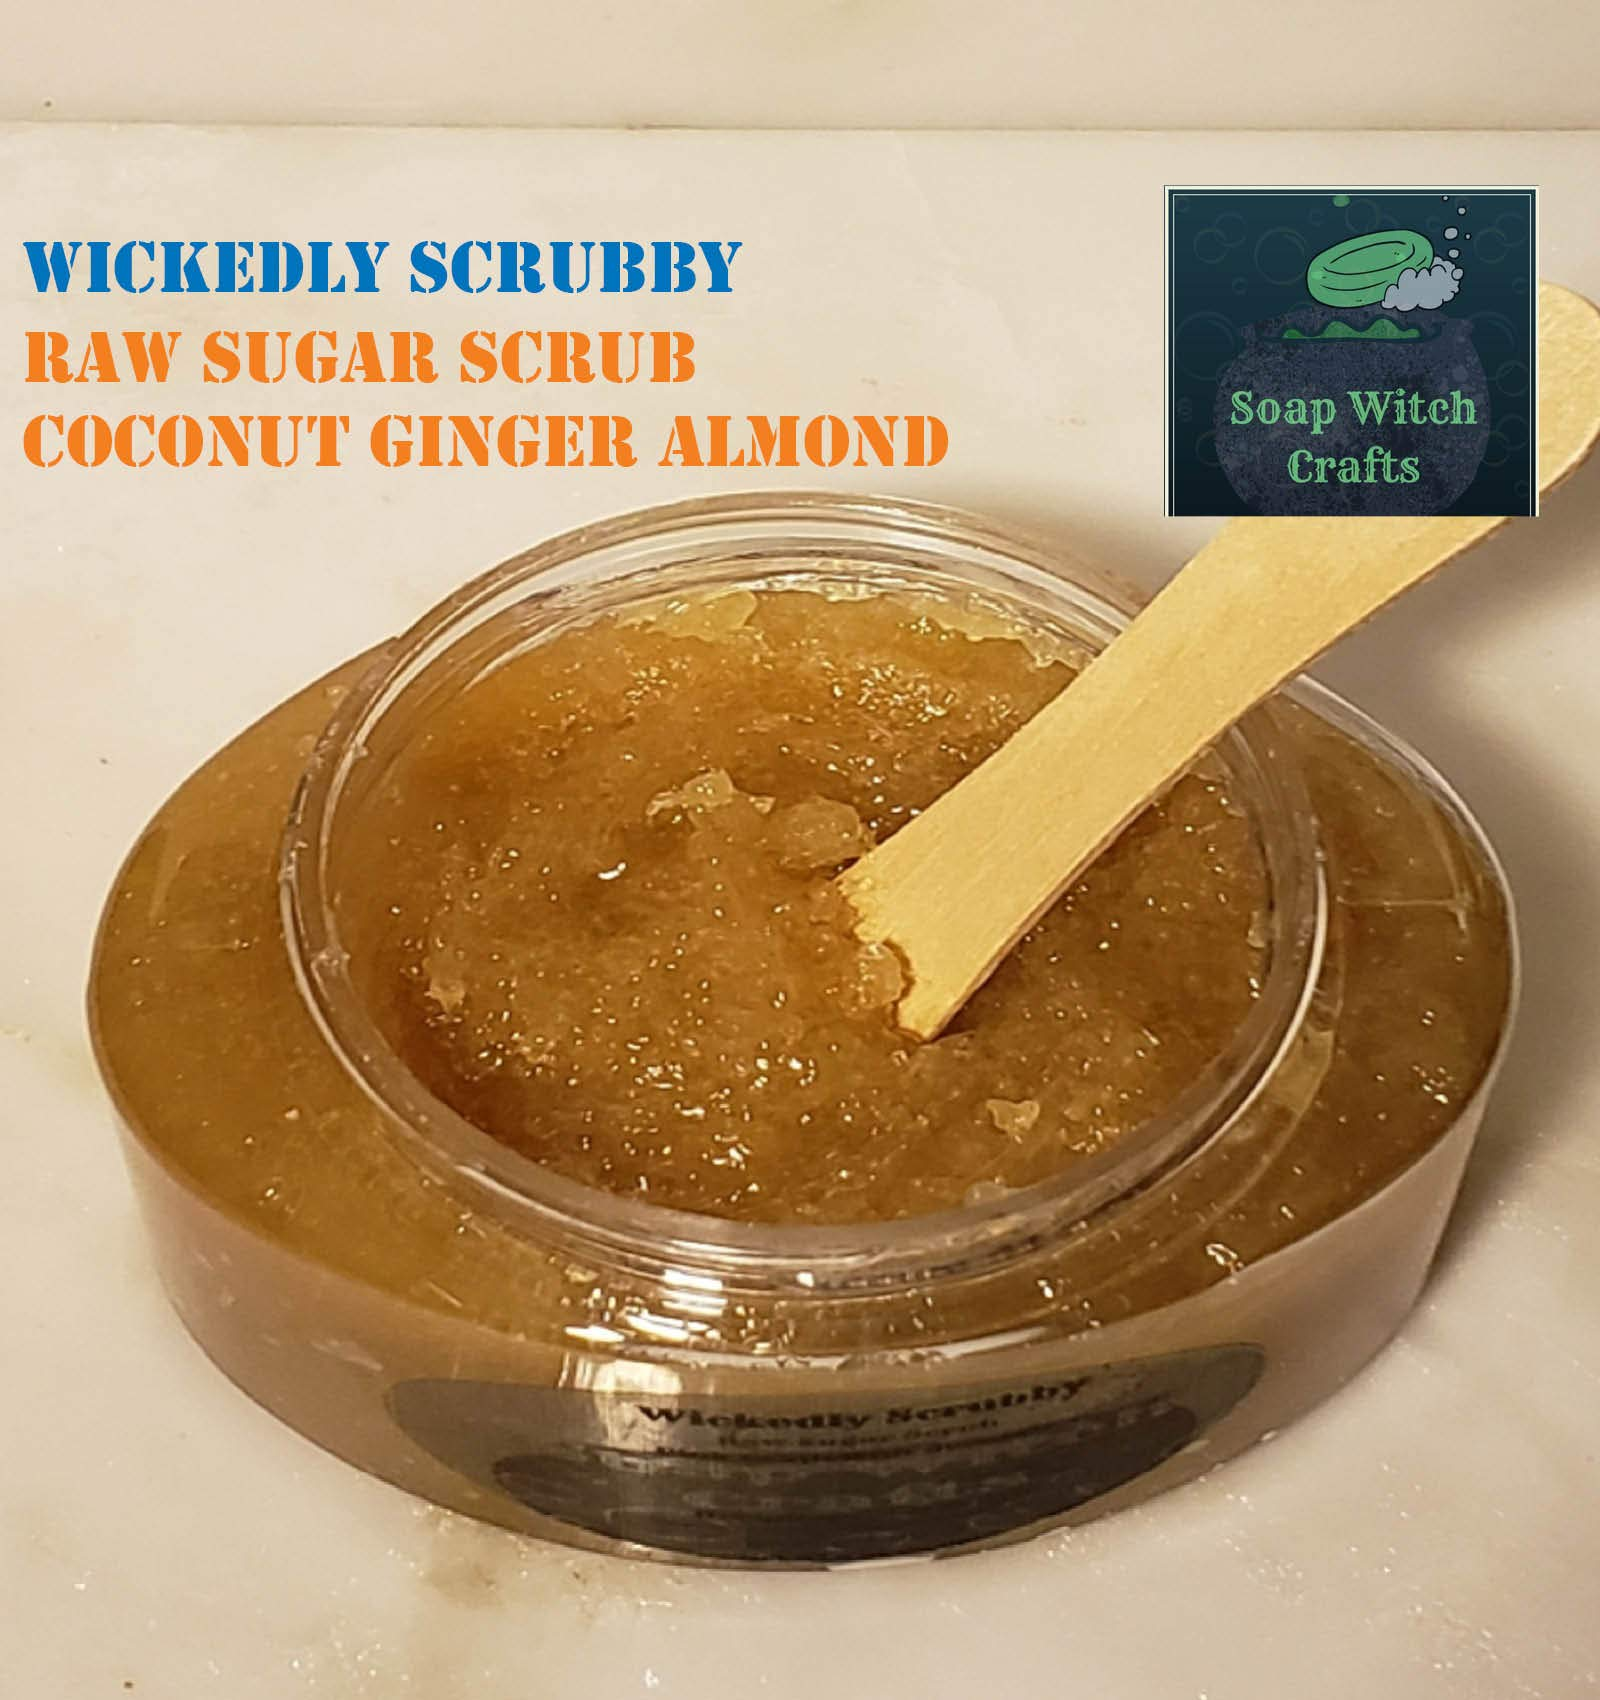 Wickedly Scrubby Raw Sugar Scrubs - Coconut Ginger Almond by Soap Witch Crafts